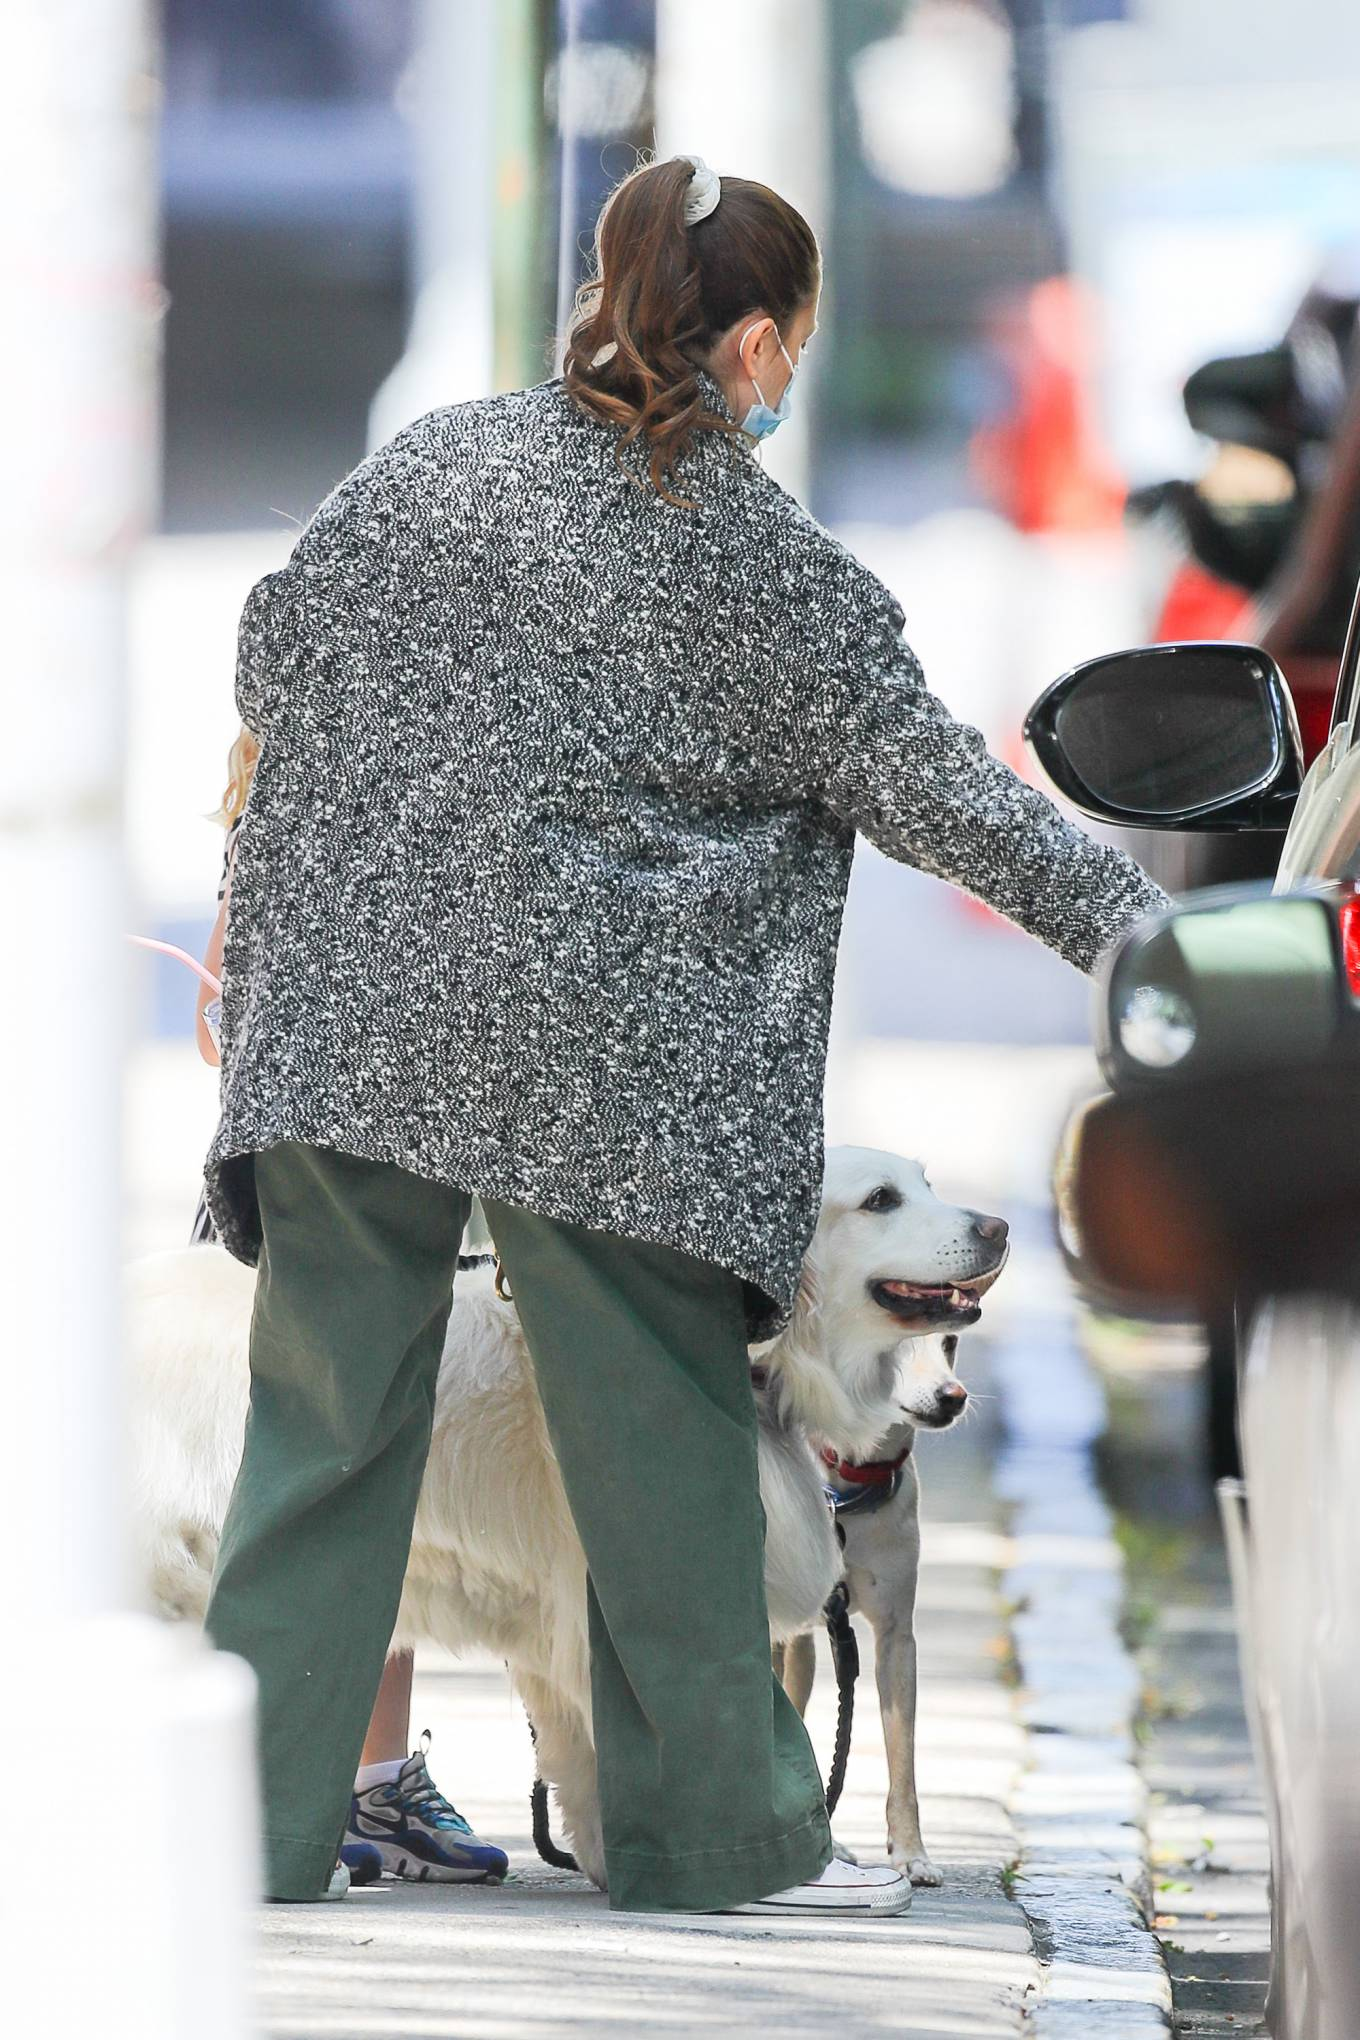 Drew Barrymore 2021 : Drew Barrymore – Seen with her dog while out and about in New York-05